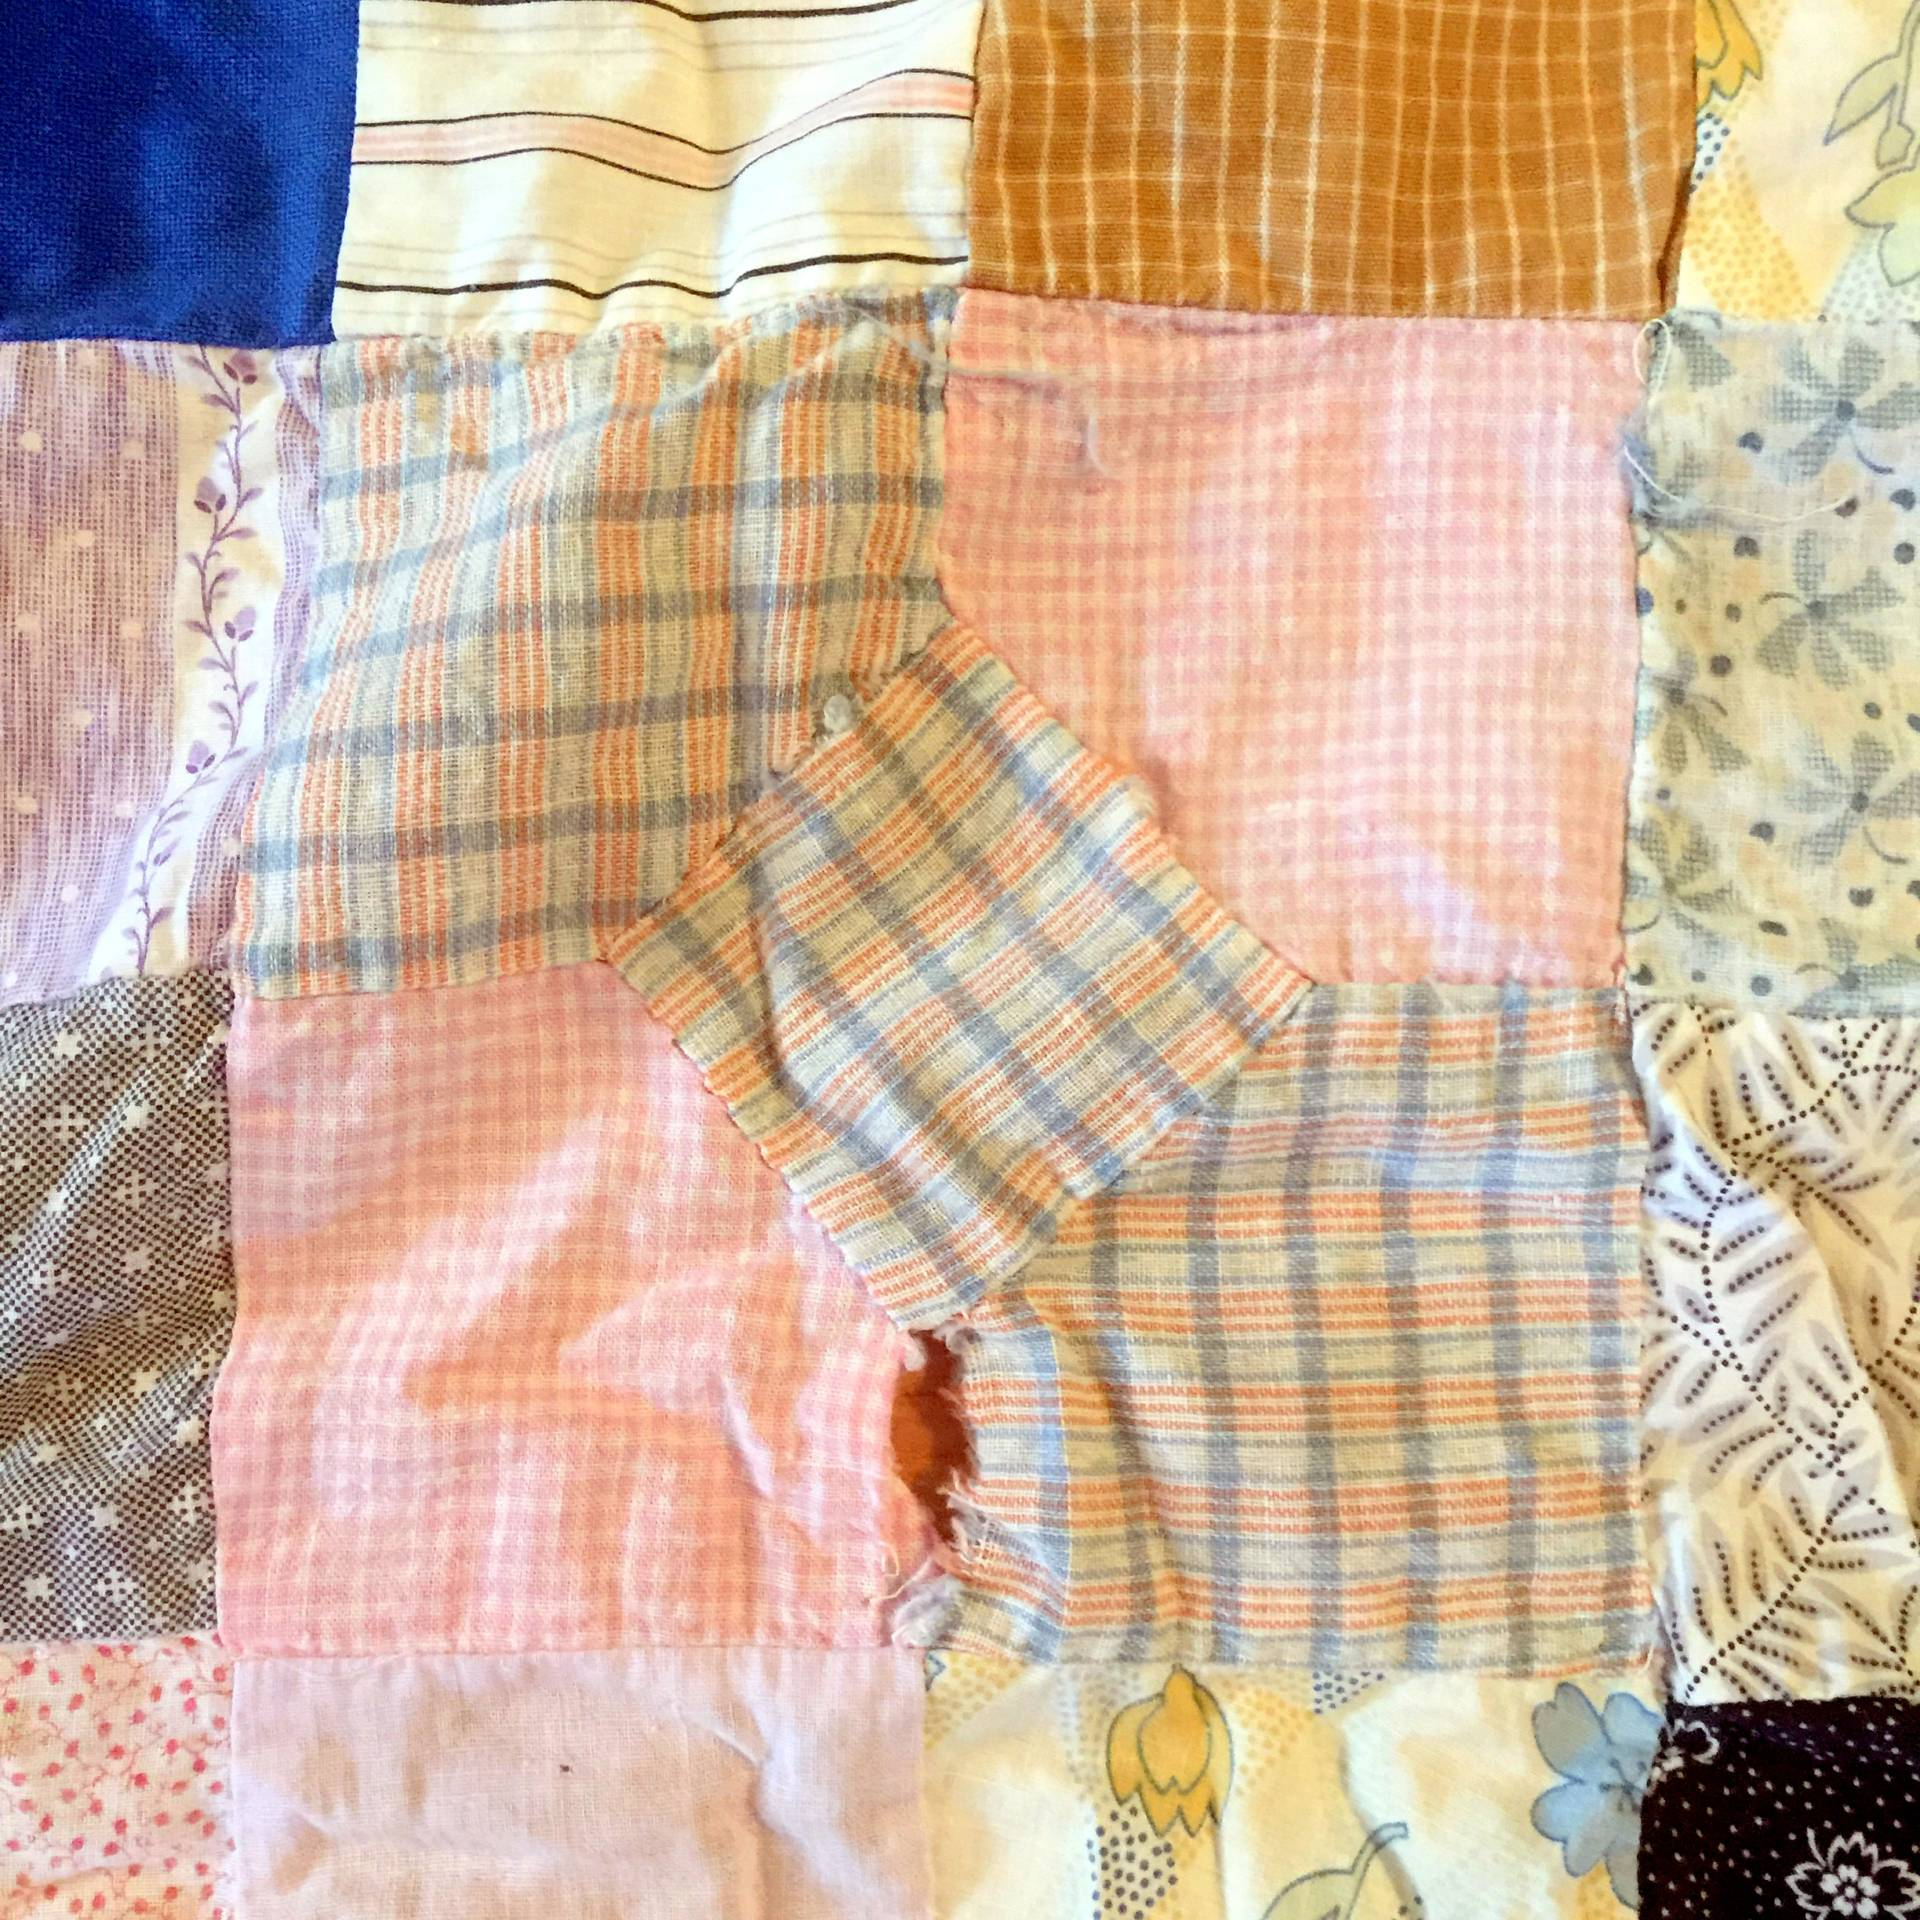 share your tips for repairing a vintage quilt top on MostlySewing.com